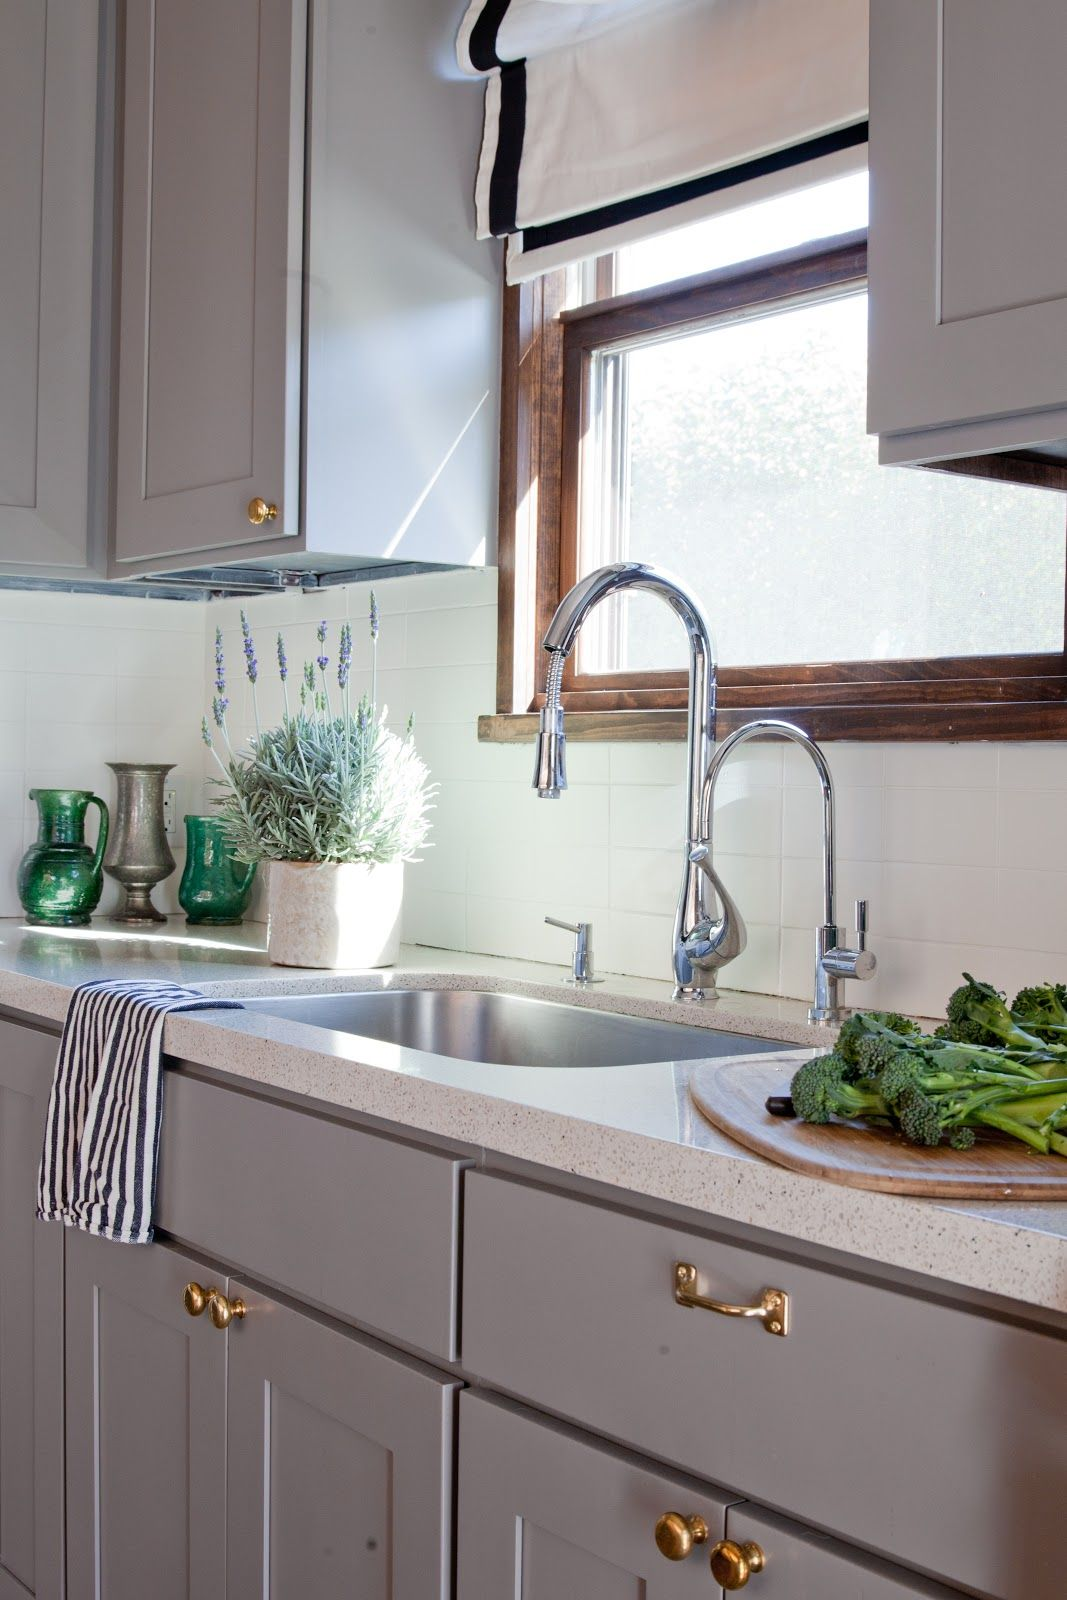 Kitchen Cabinets Philadelphia New Decor Cabinets In A Benjamin Moore Distant Gray Finish